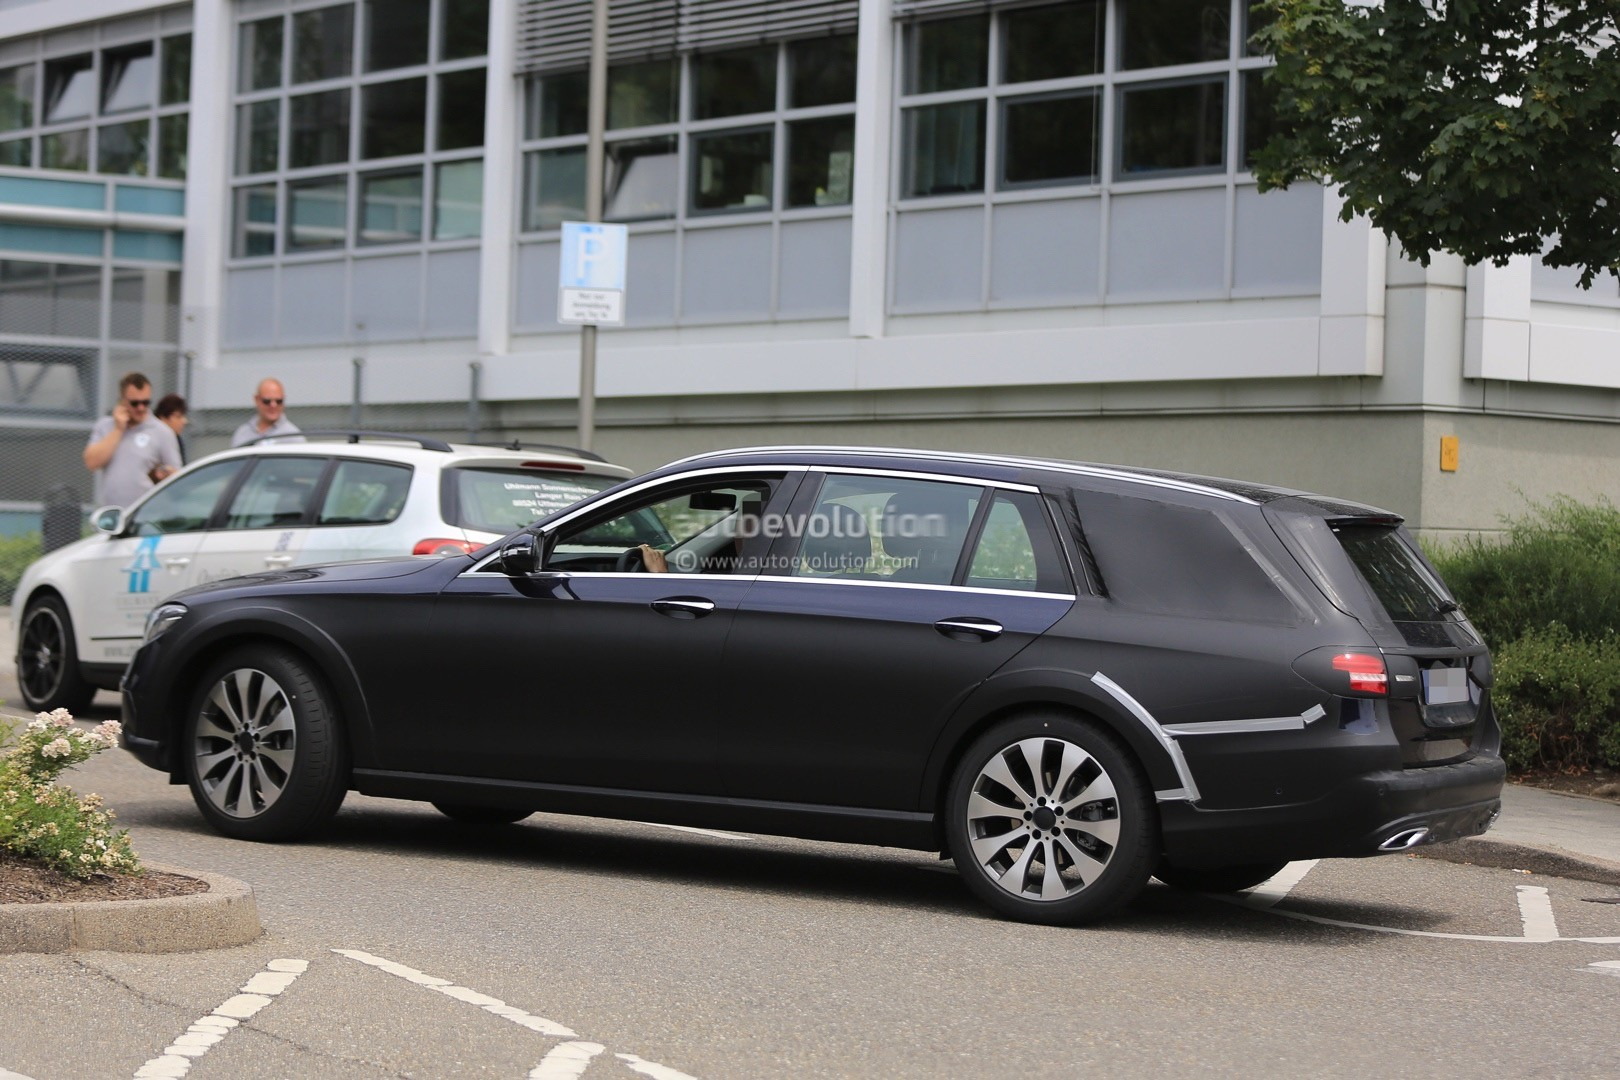 2017 mercedes benz e class all terrain x213 spied in for All classes of mercedes benz